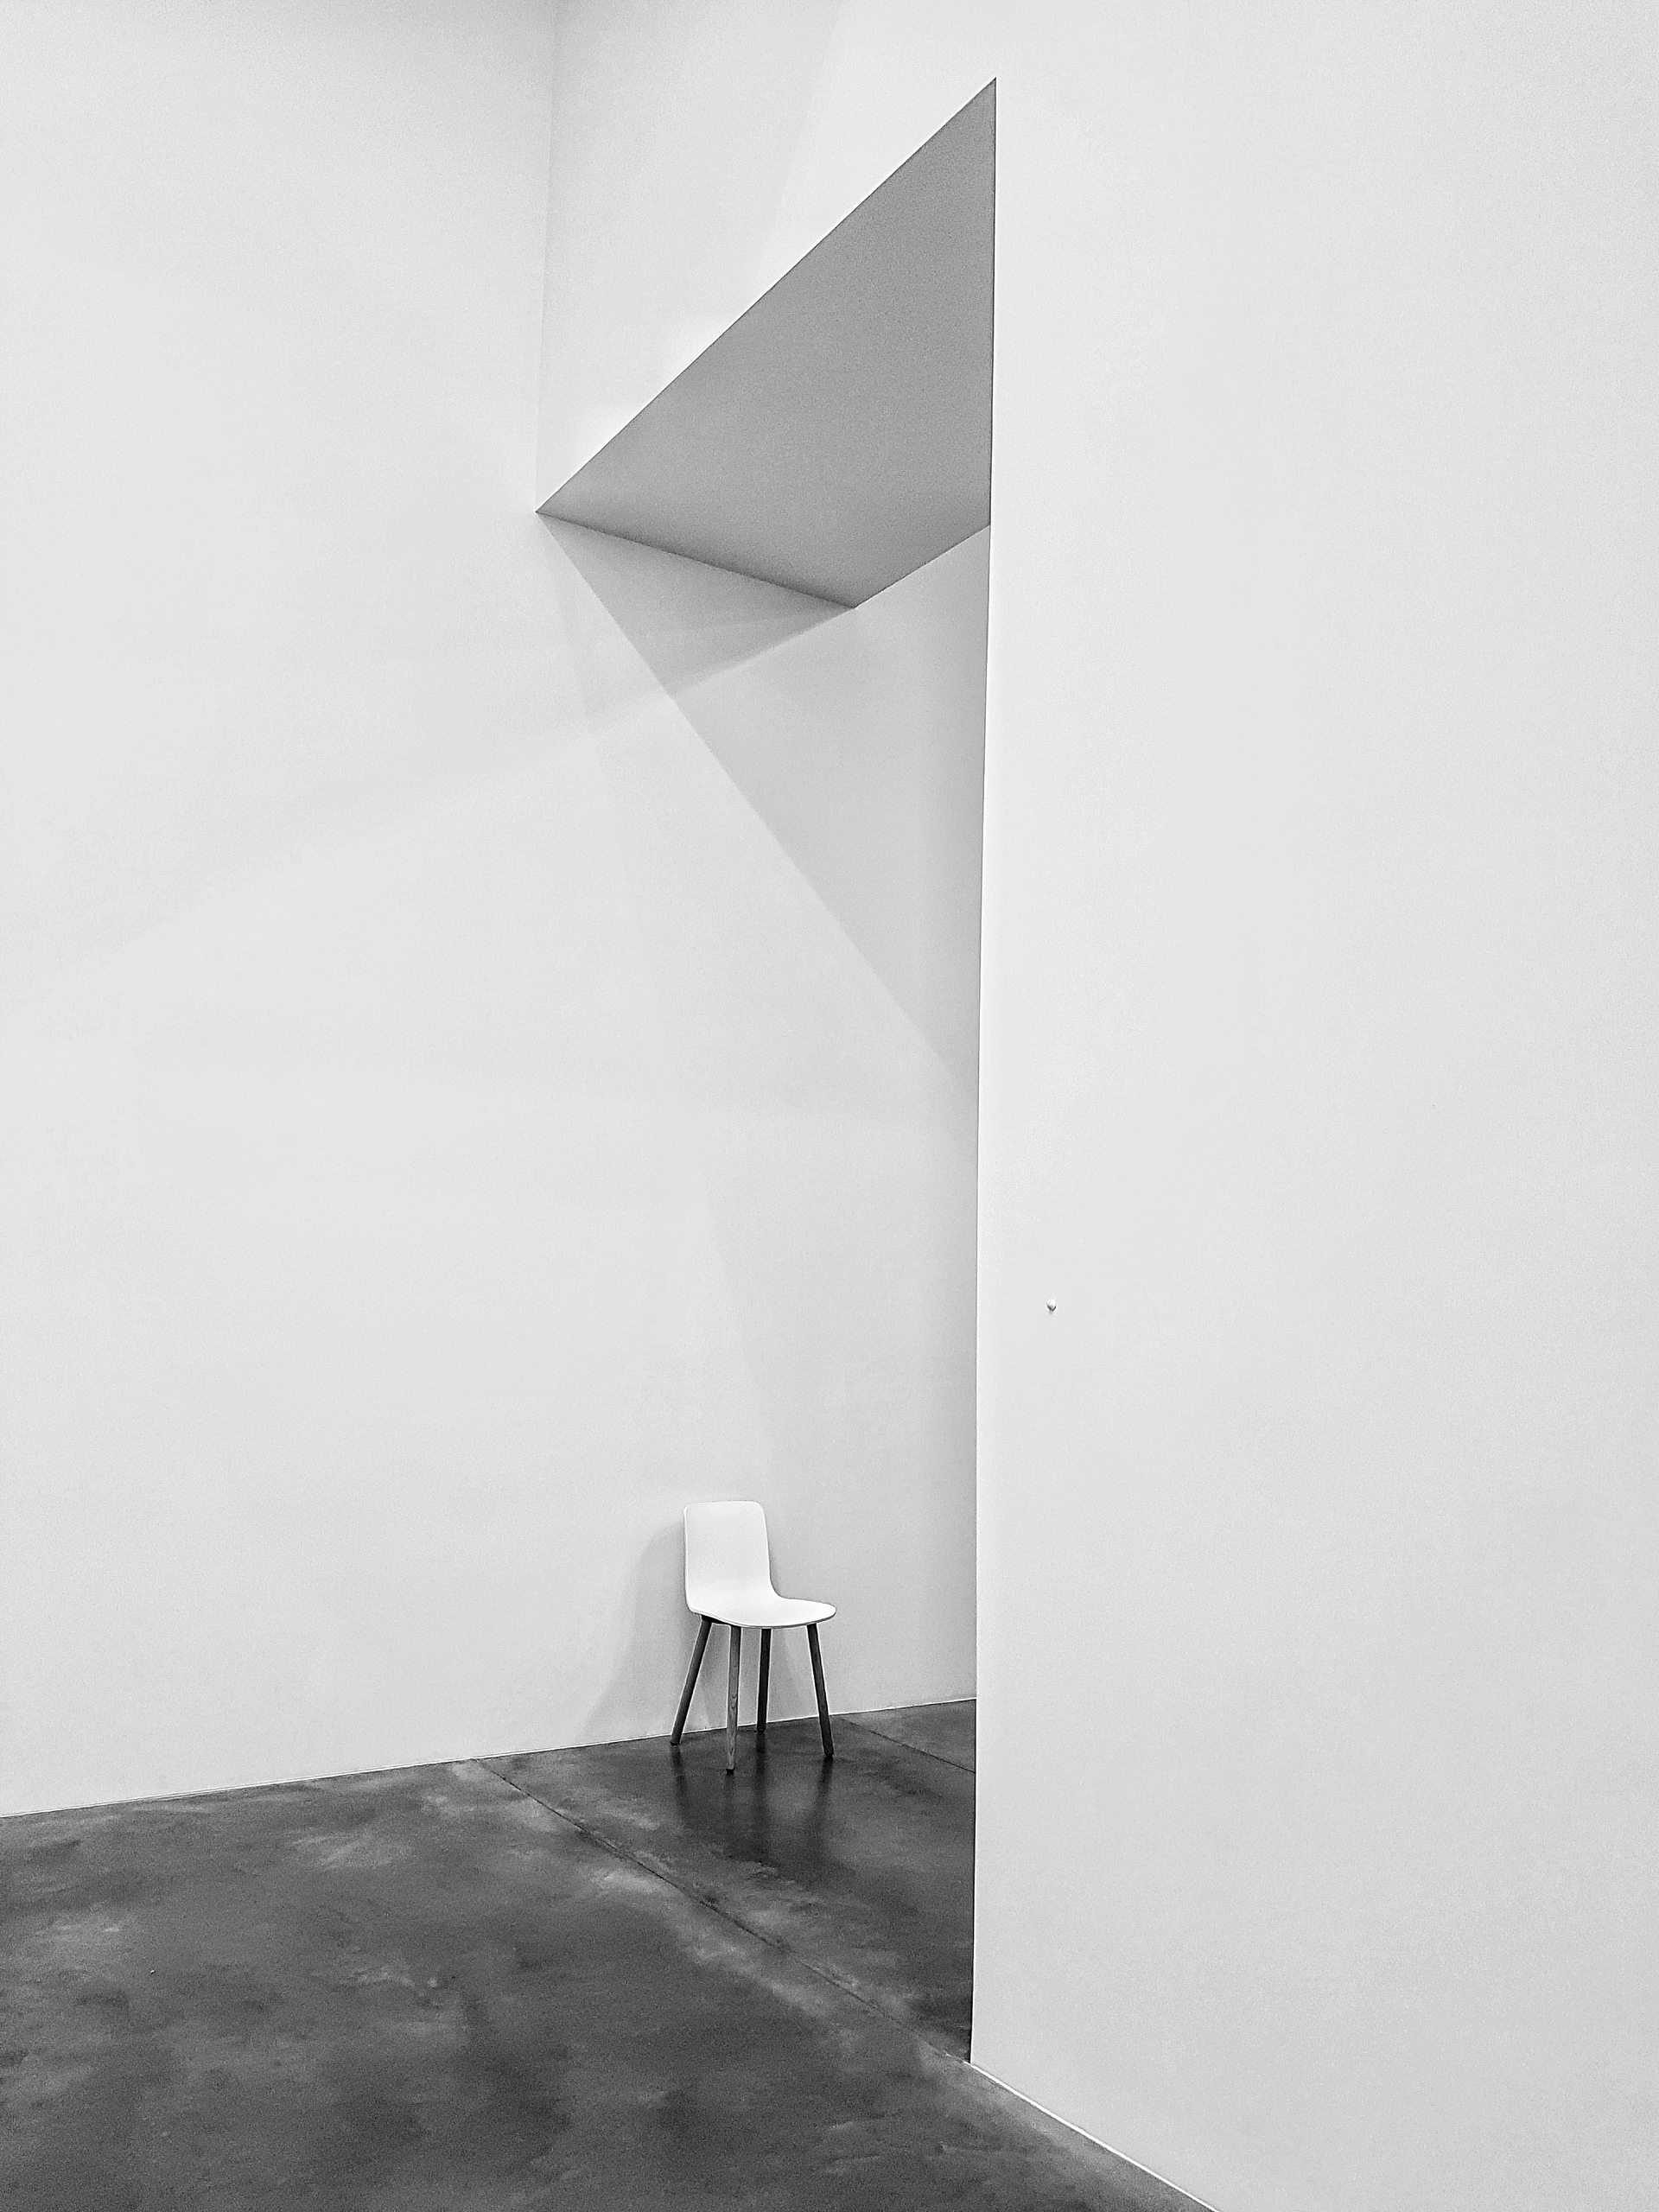 white chair | sarinita, abstract, architecture, empty